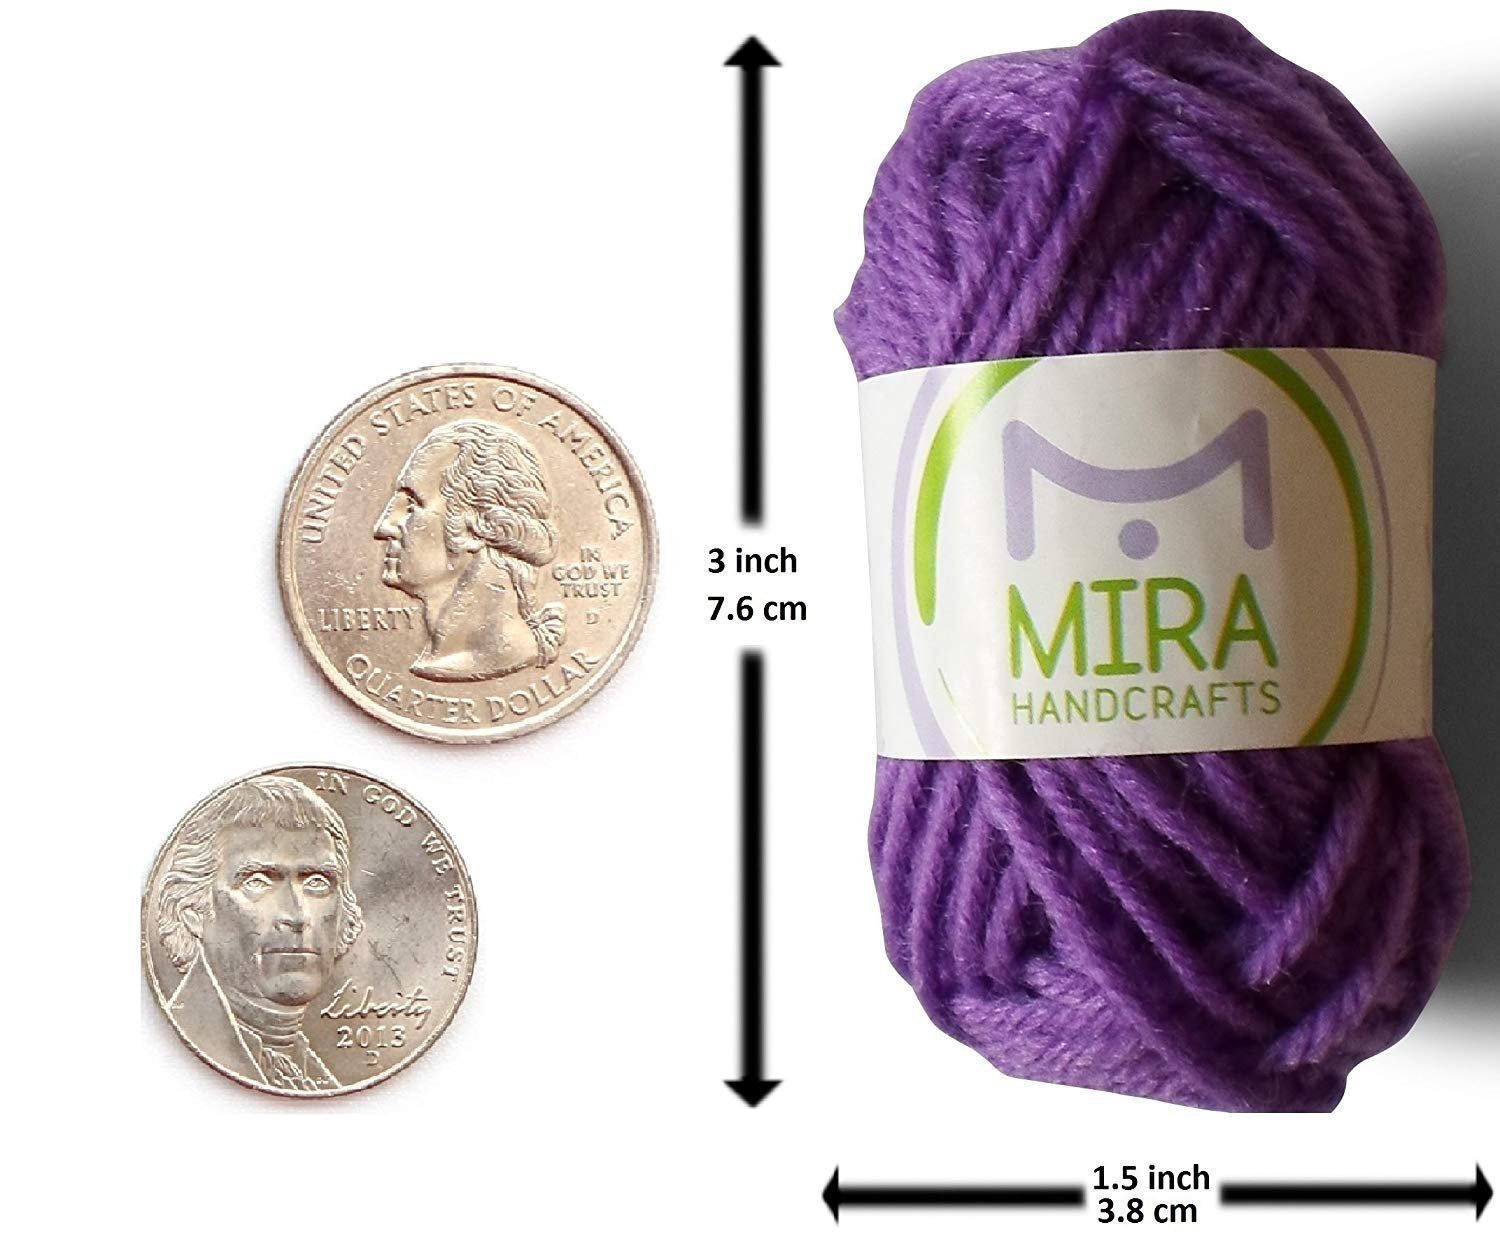 Mira Handcrafts 60 Yarn Bonbons - Total of 1312 Yard Acrylic Yarn for Knitting and Crochet - Yarn Bag for Storage and Accessories Included with Each Pack by Mira HandCrafts (Image #4)